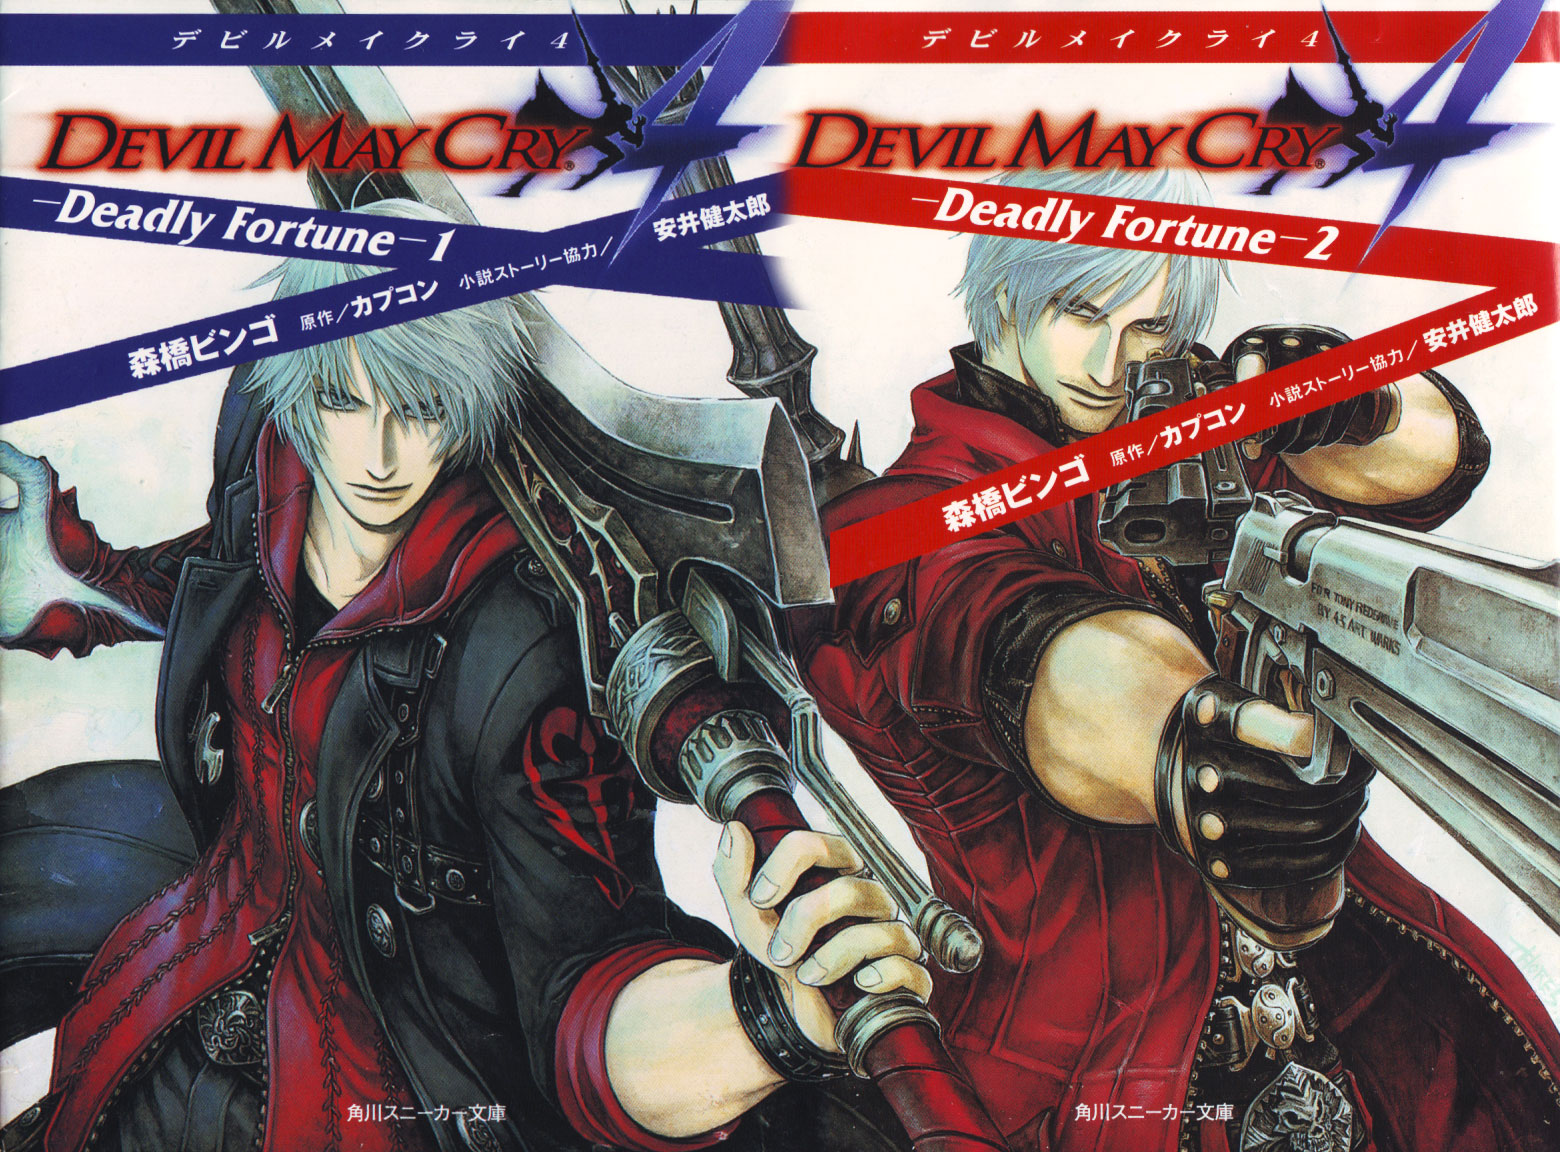 Archivo:Deadly Fortune covers.jpg